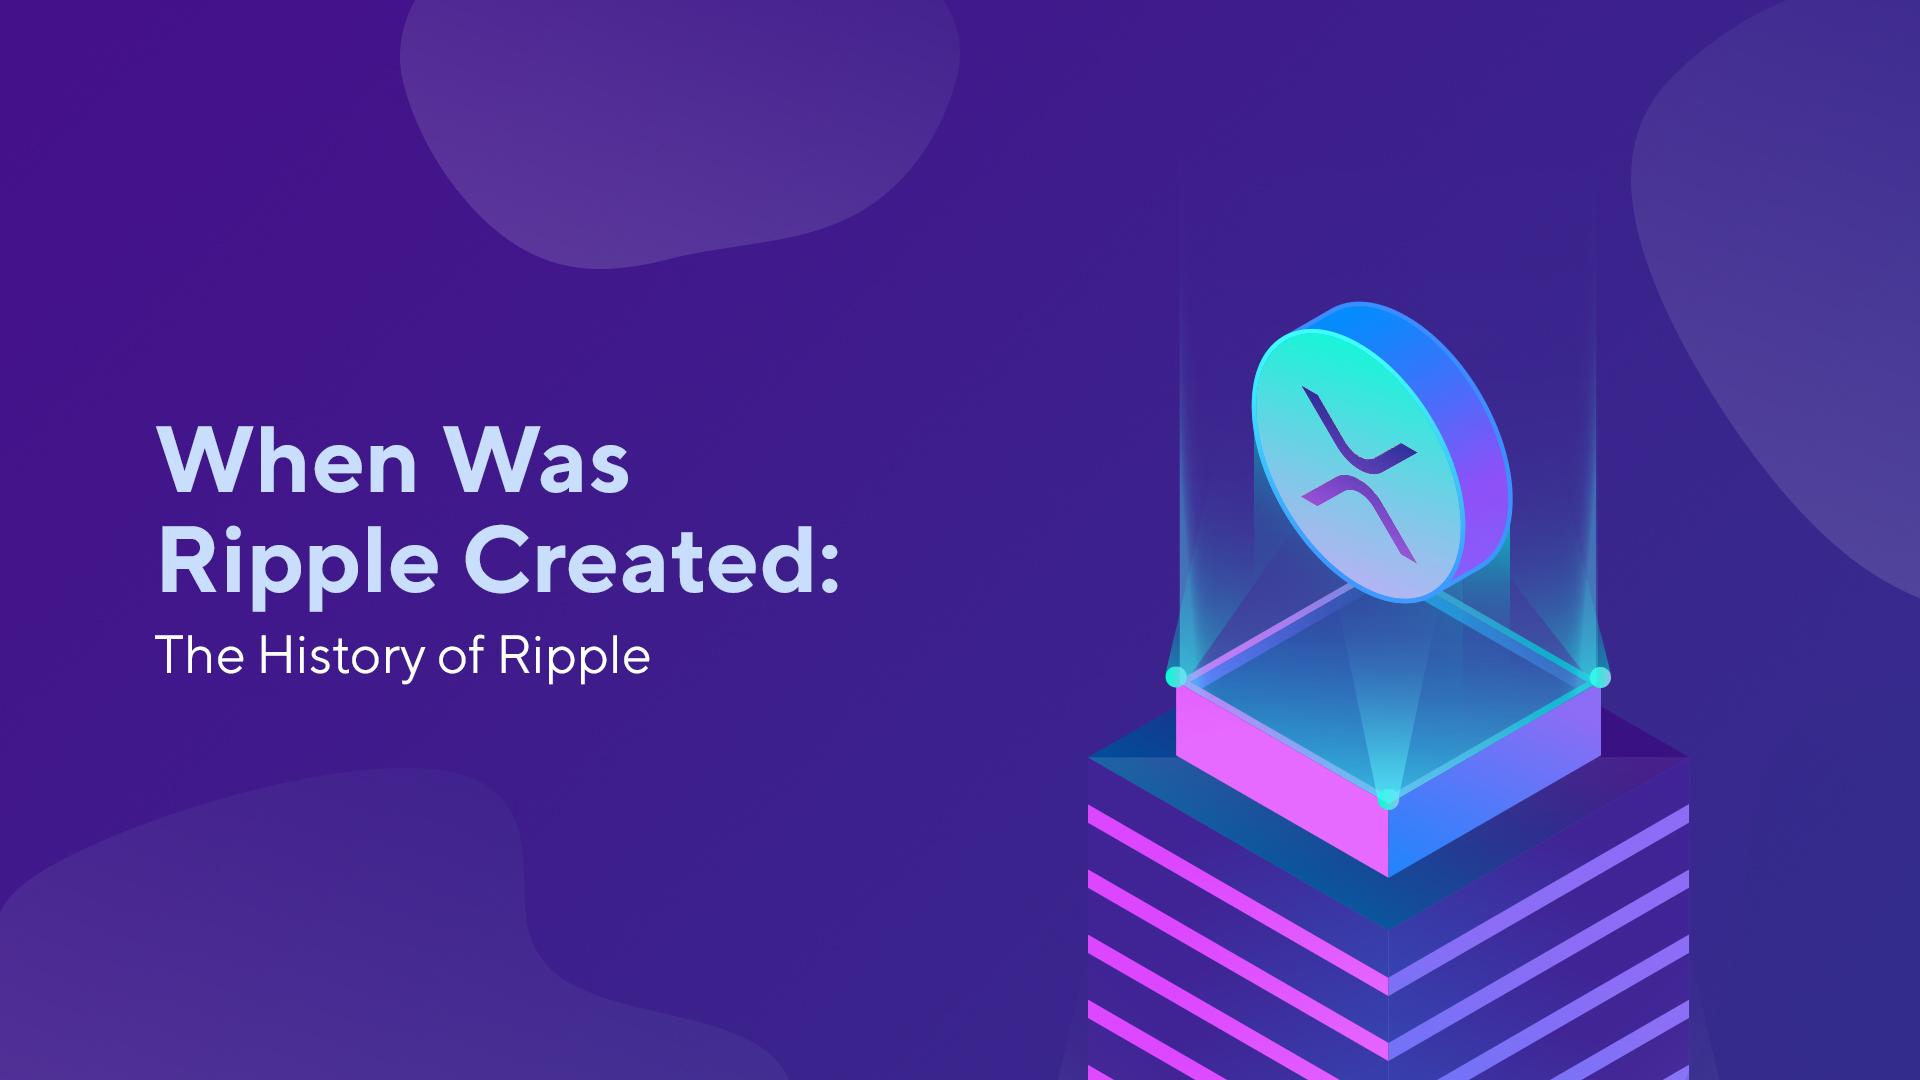 When Was Ripple Created: The History of Ripple